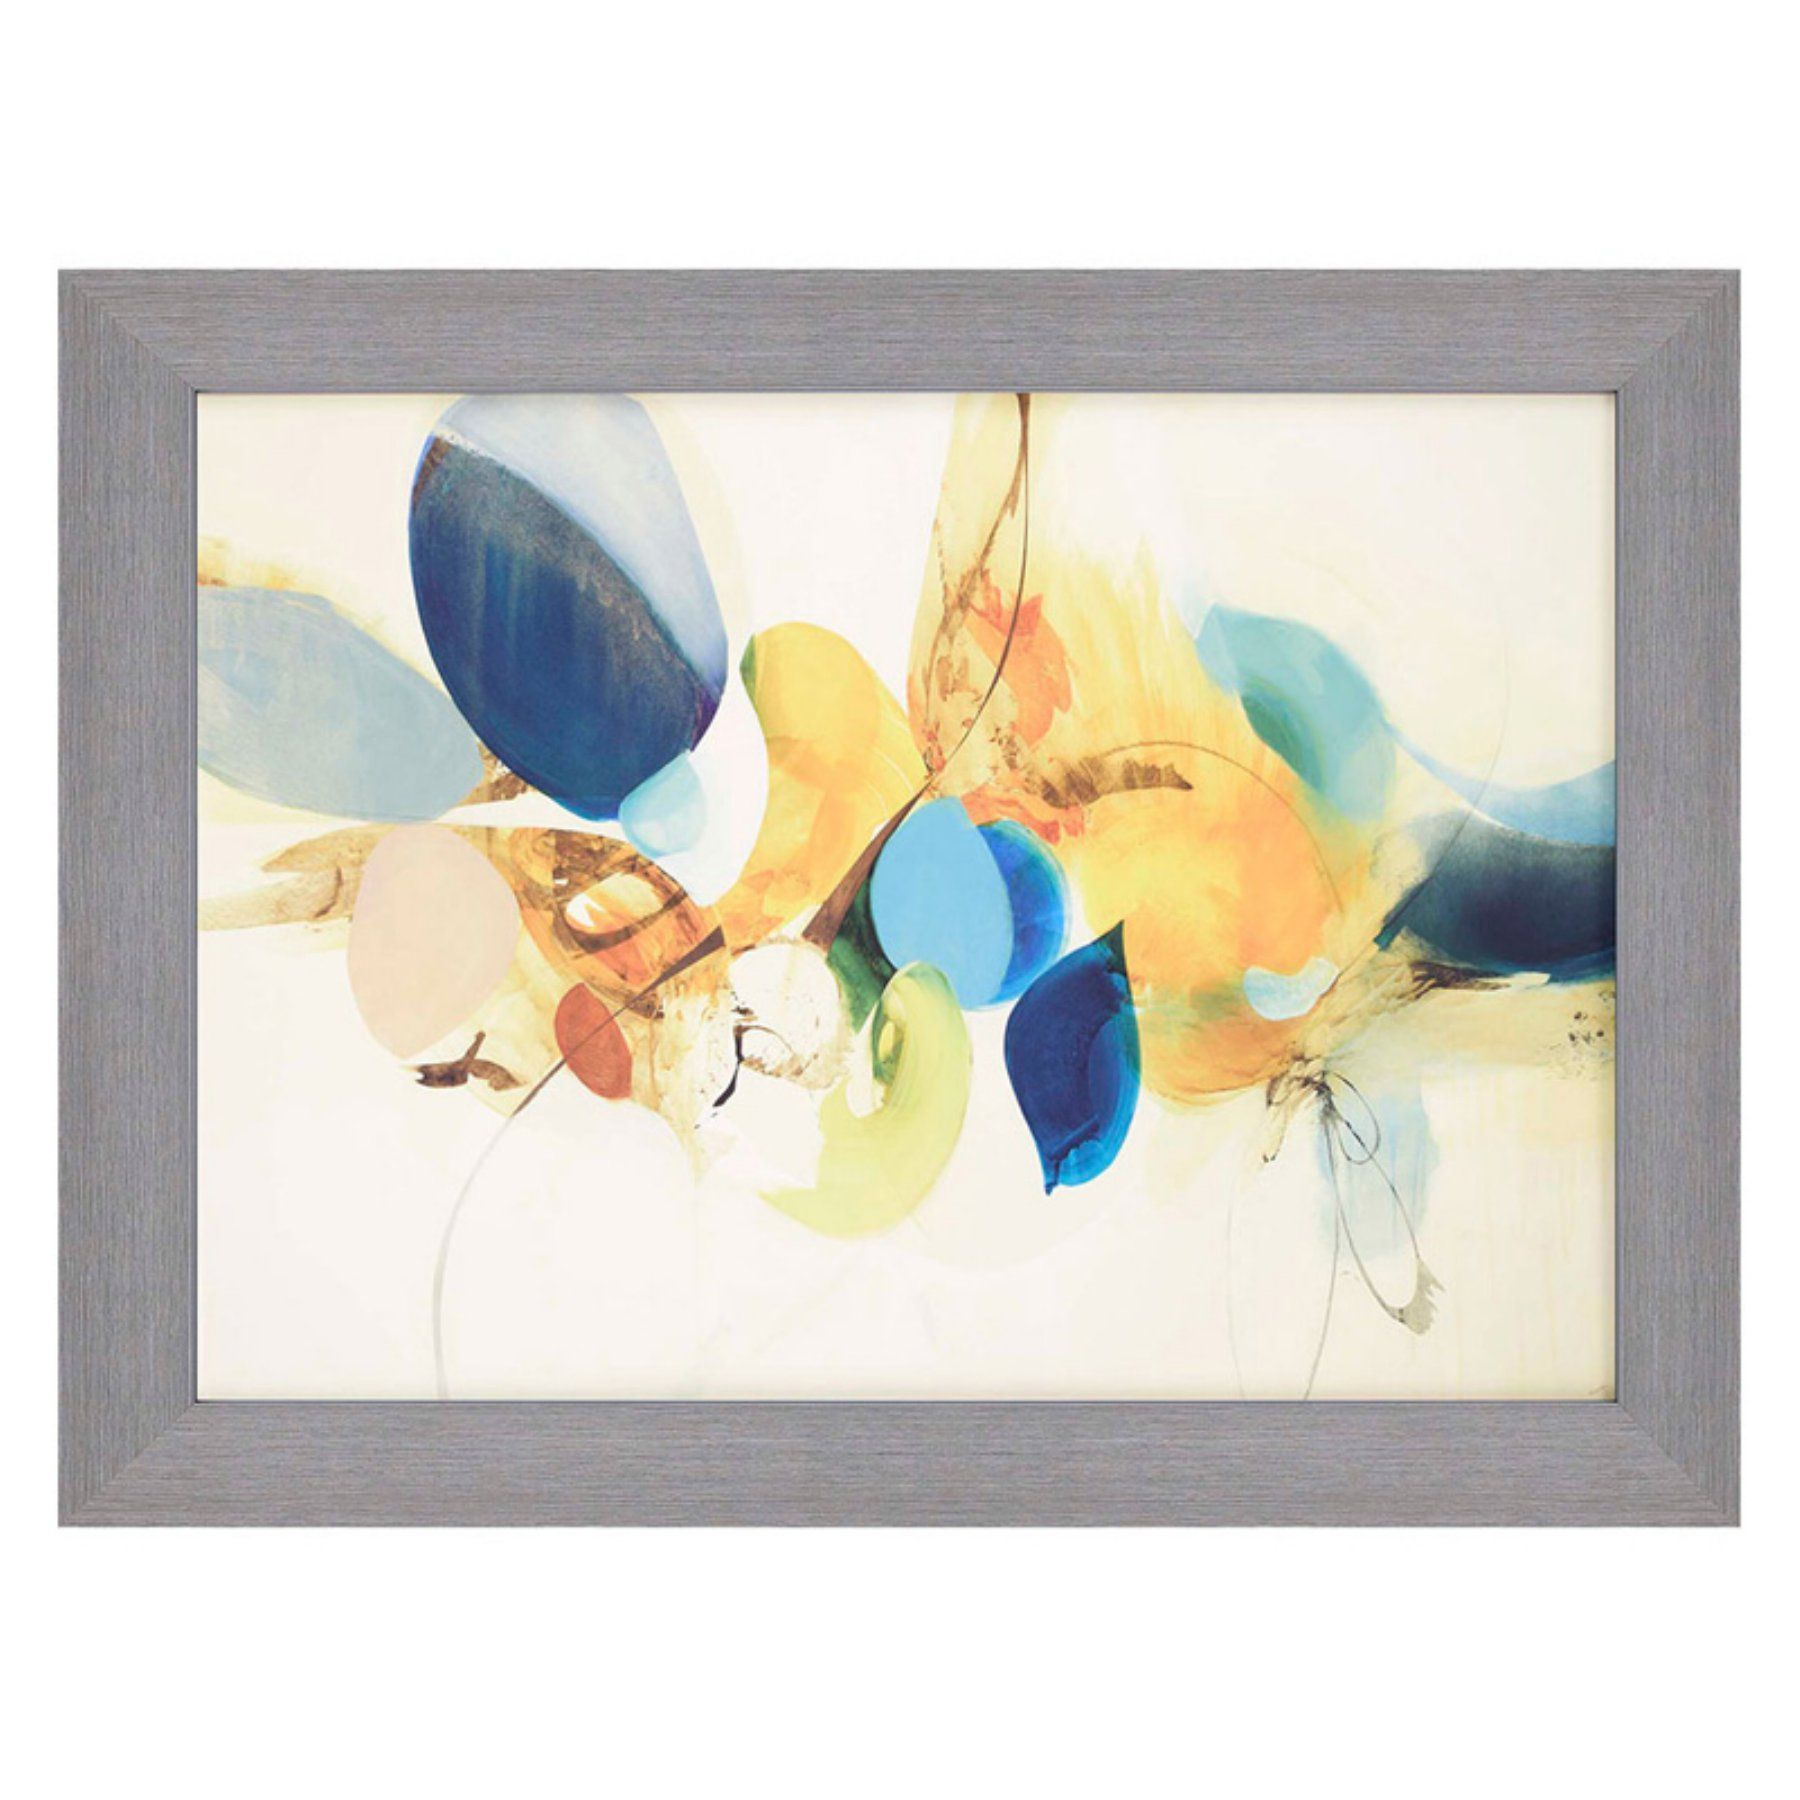 Paragon Candid Color Framed Wall Art - 1138 | Framed wall art